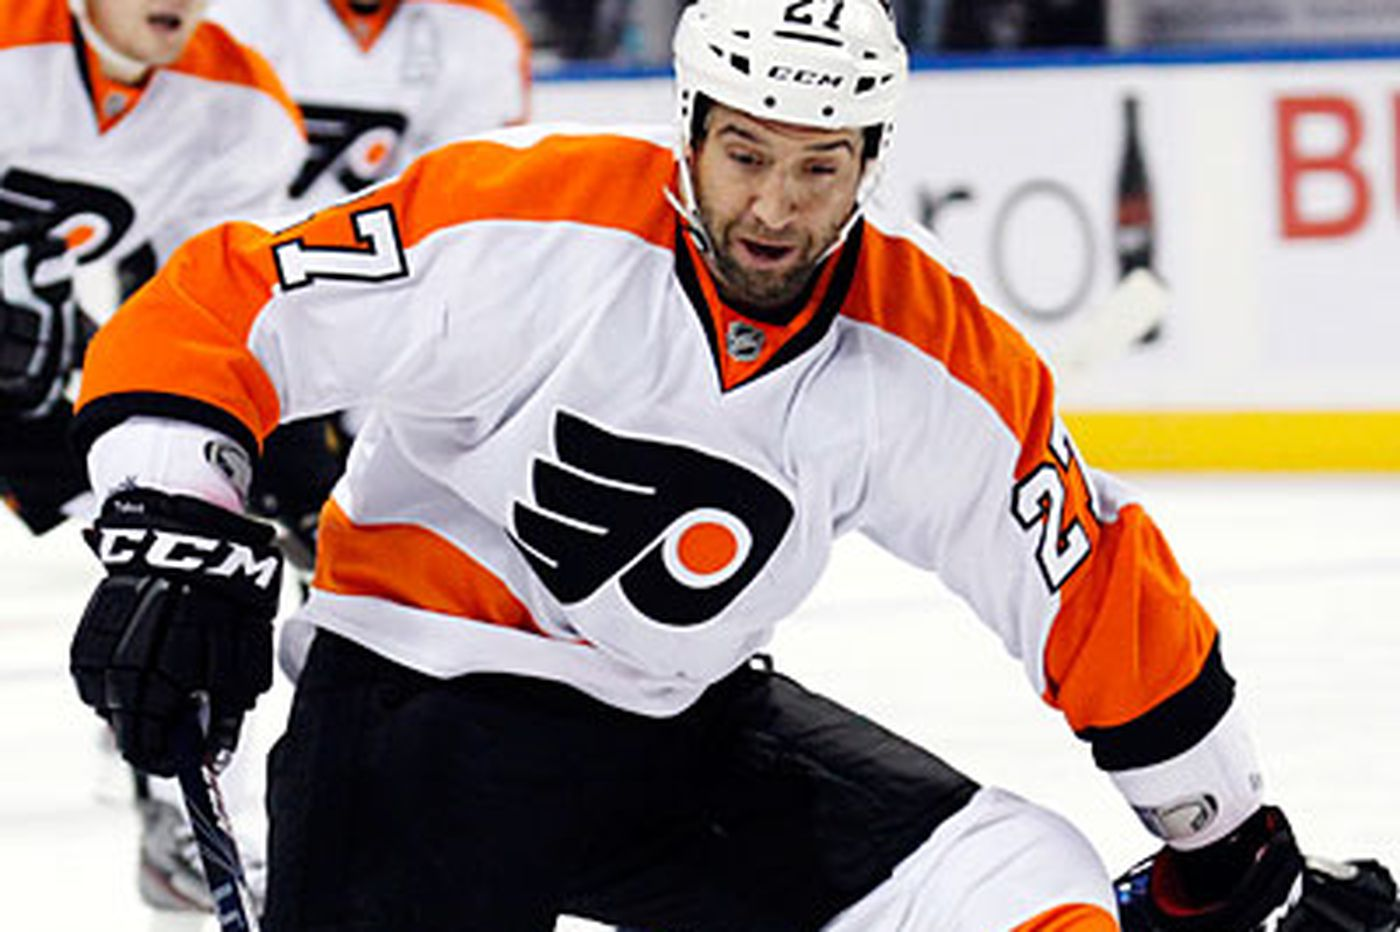 Flyers Notes: Flyers' Talbot eager to face Penguins